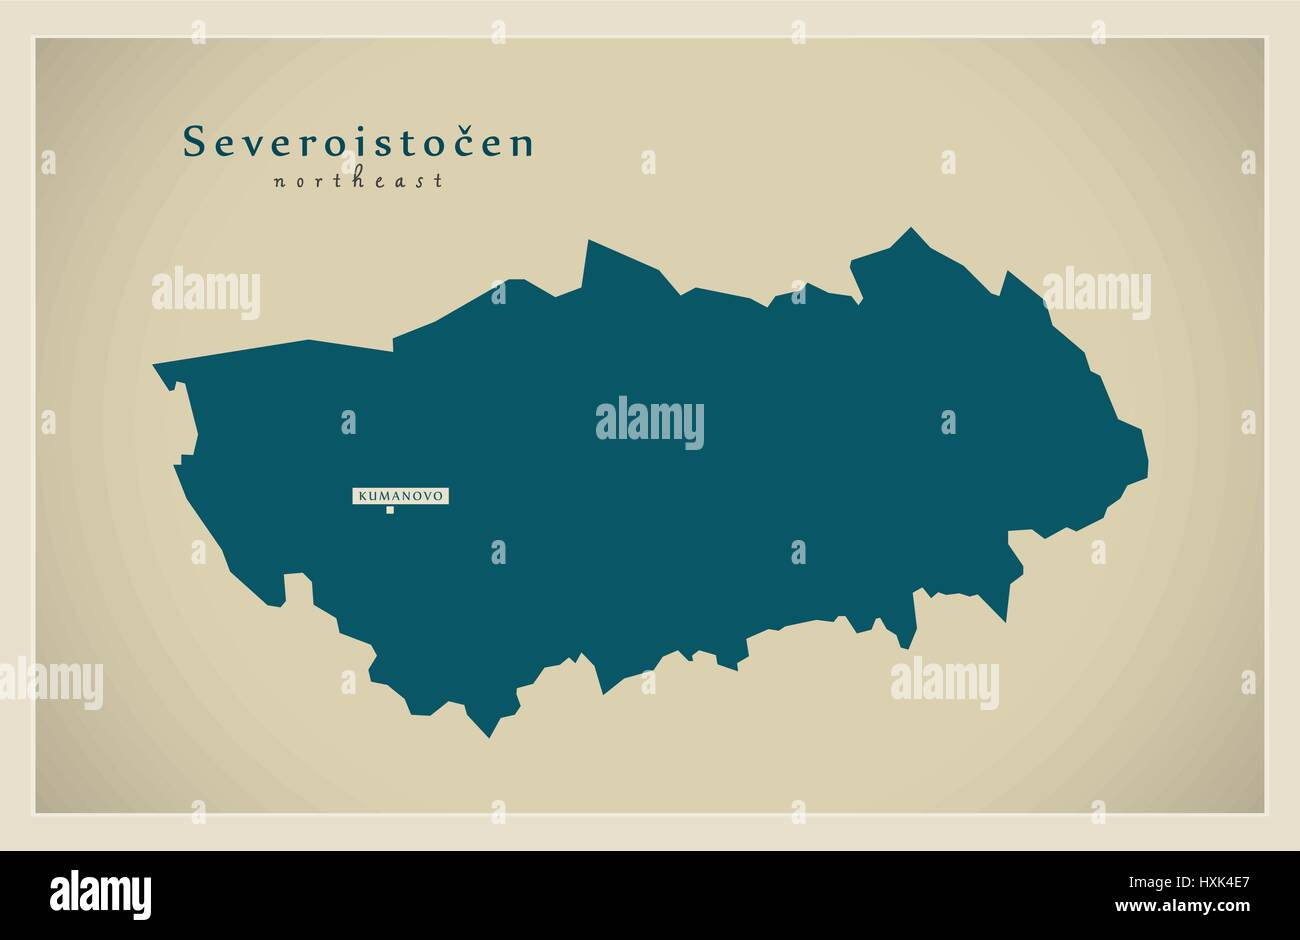 Modern Map - Severoistocen MK - Stock Vector